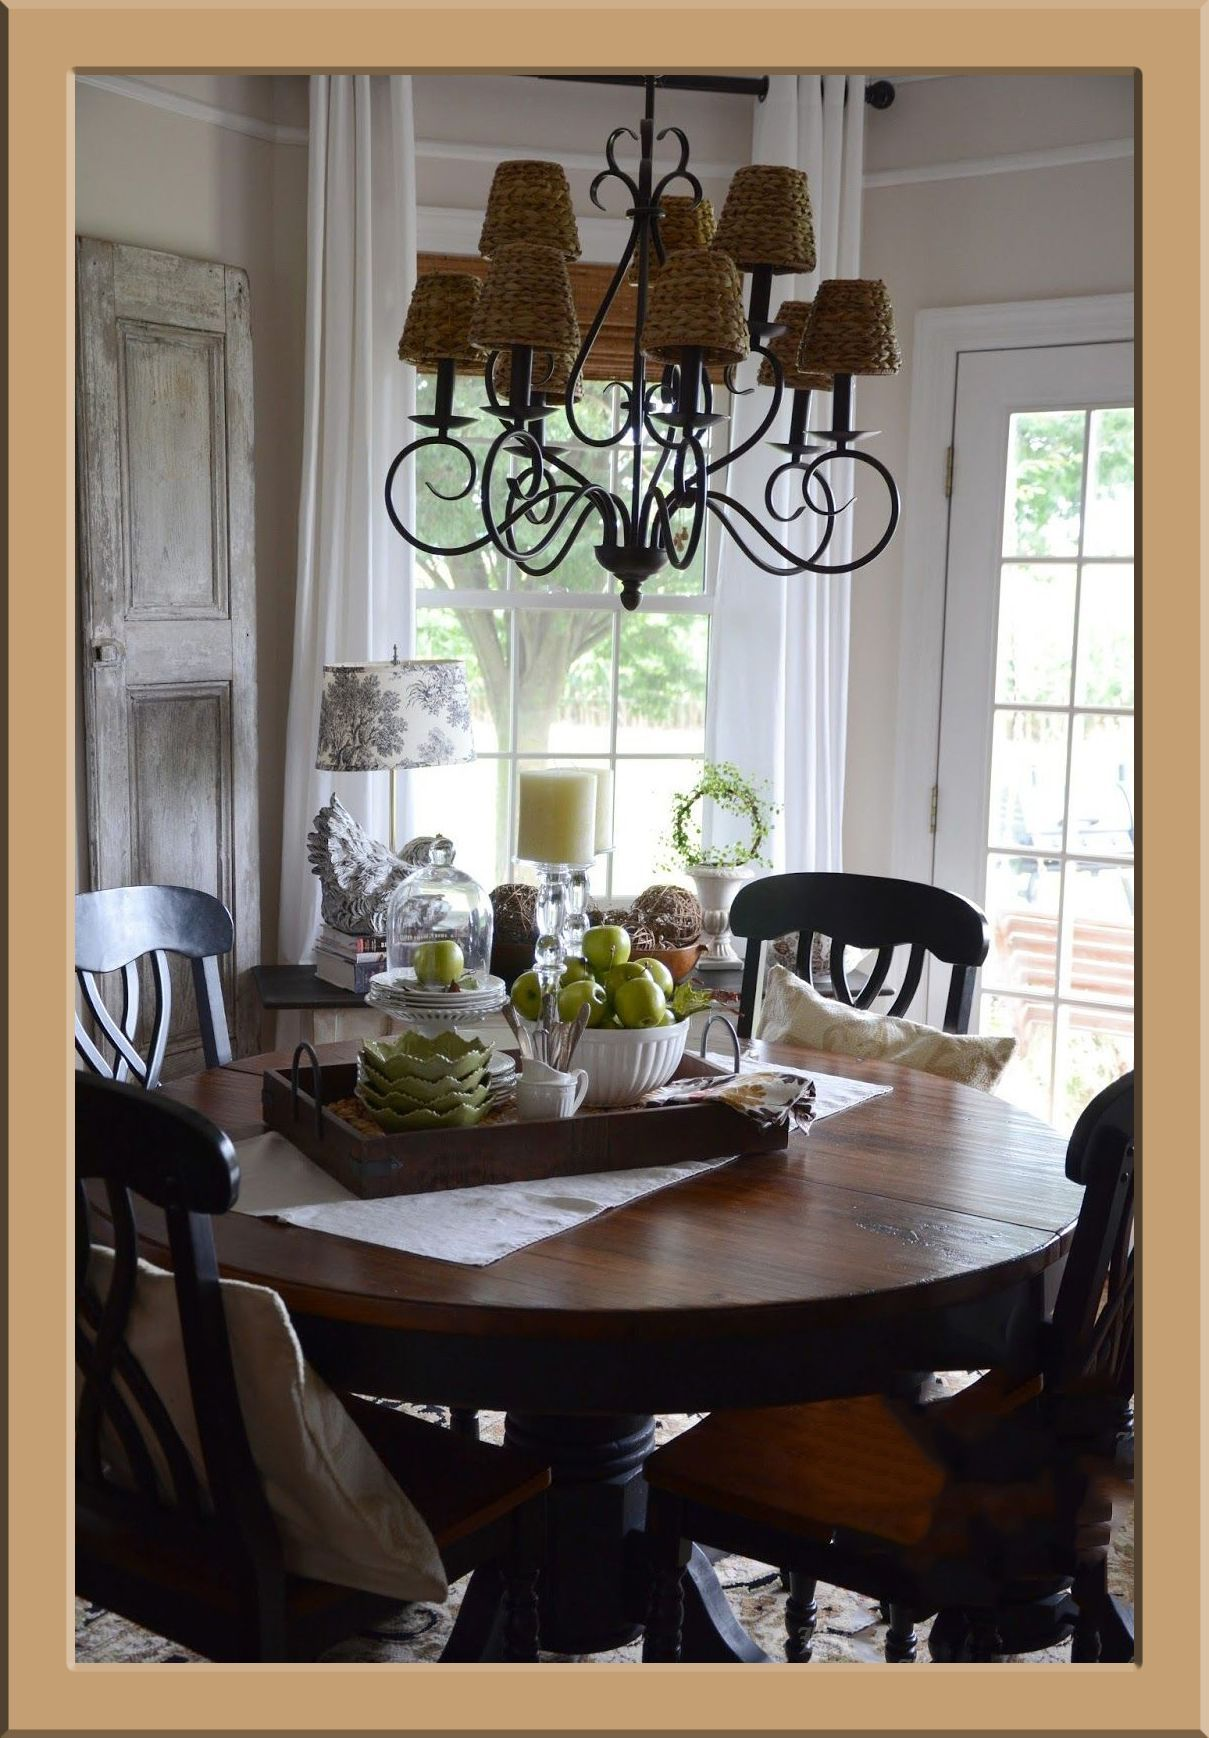 Kitchen Decor One Question You Don T Want To Ask Anymore In 2020 Dining Room Table Centerpieces Dining Table Decor Centerpiece Dining Table Decor